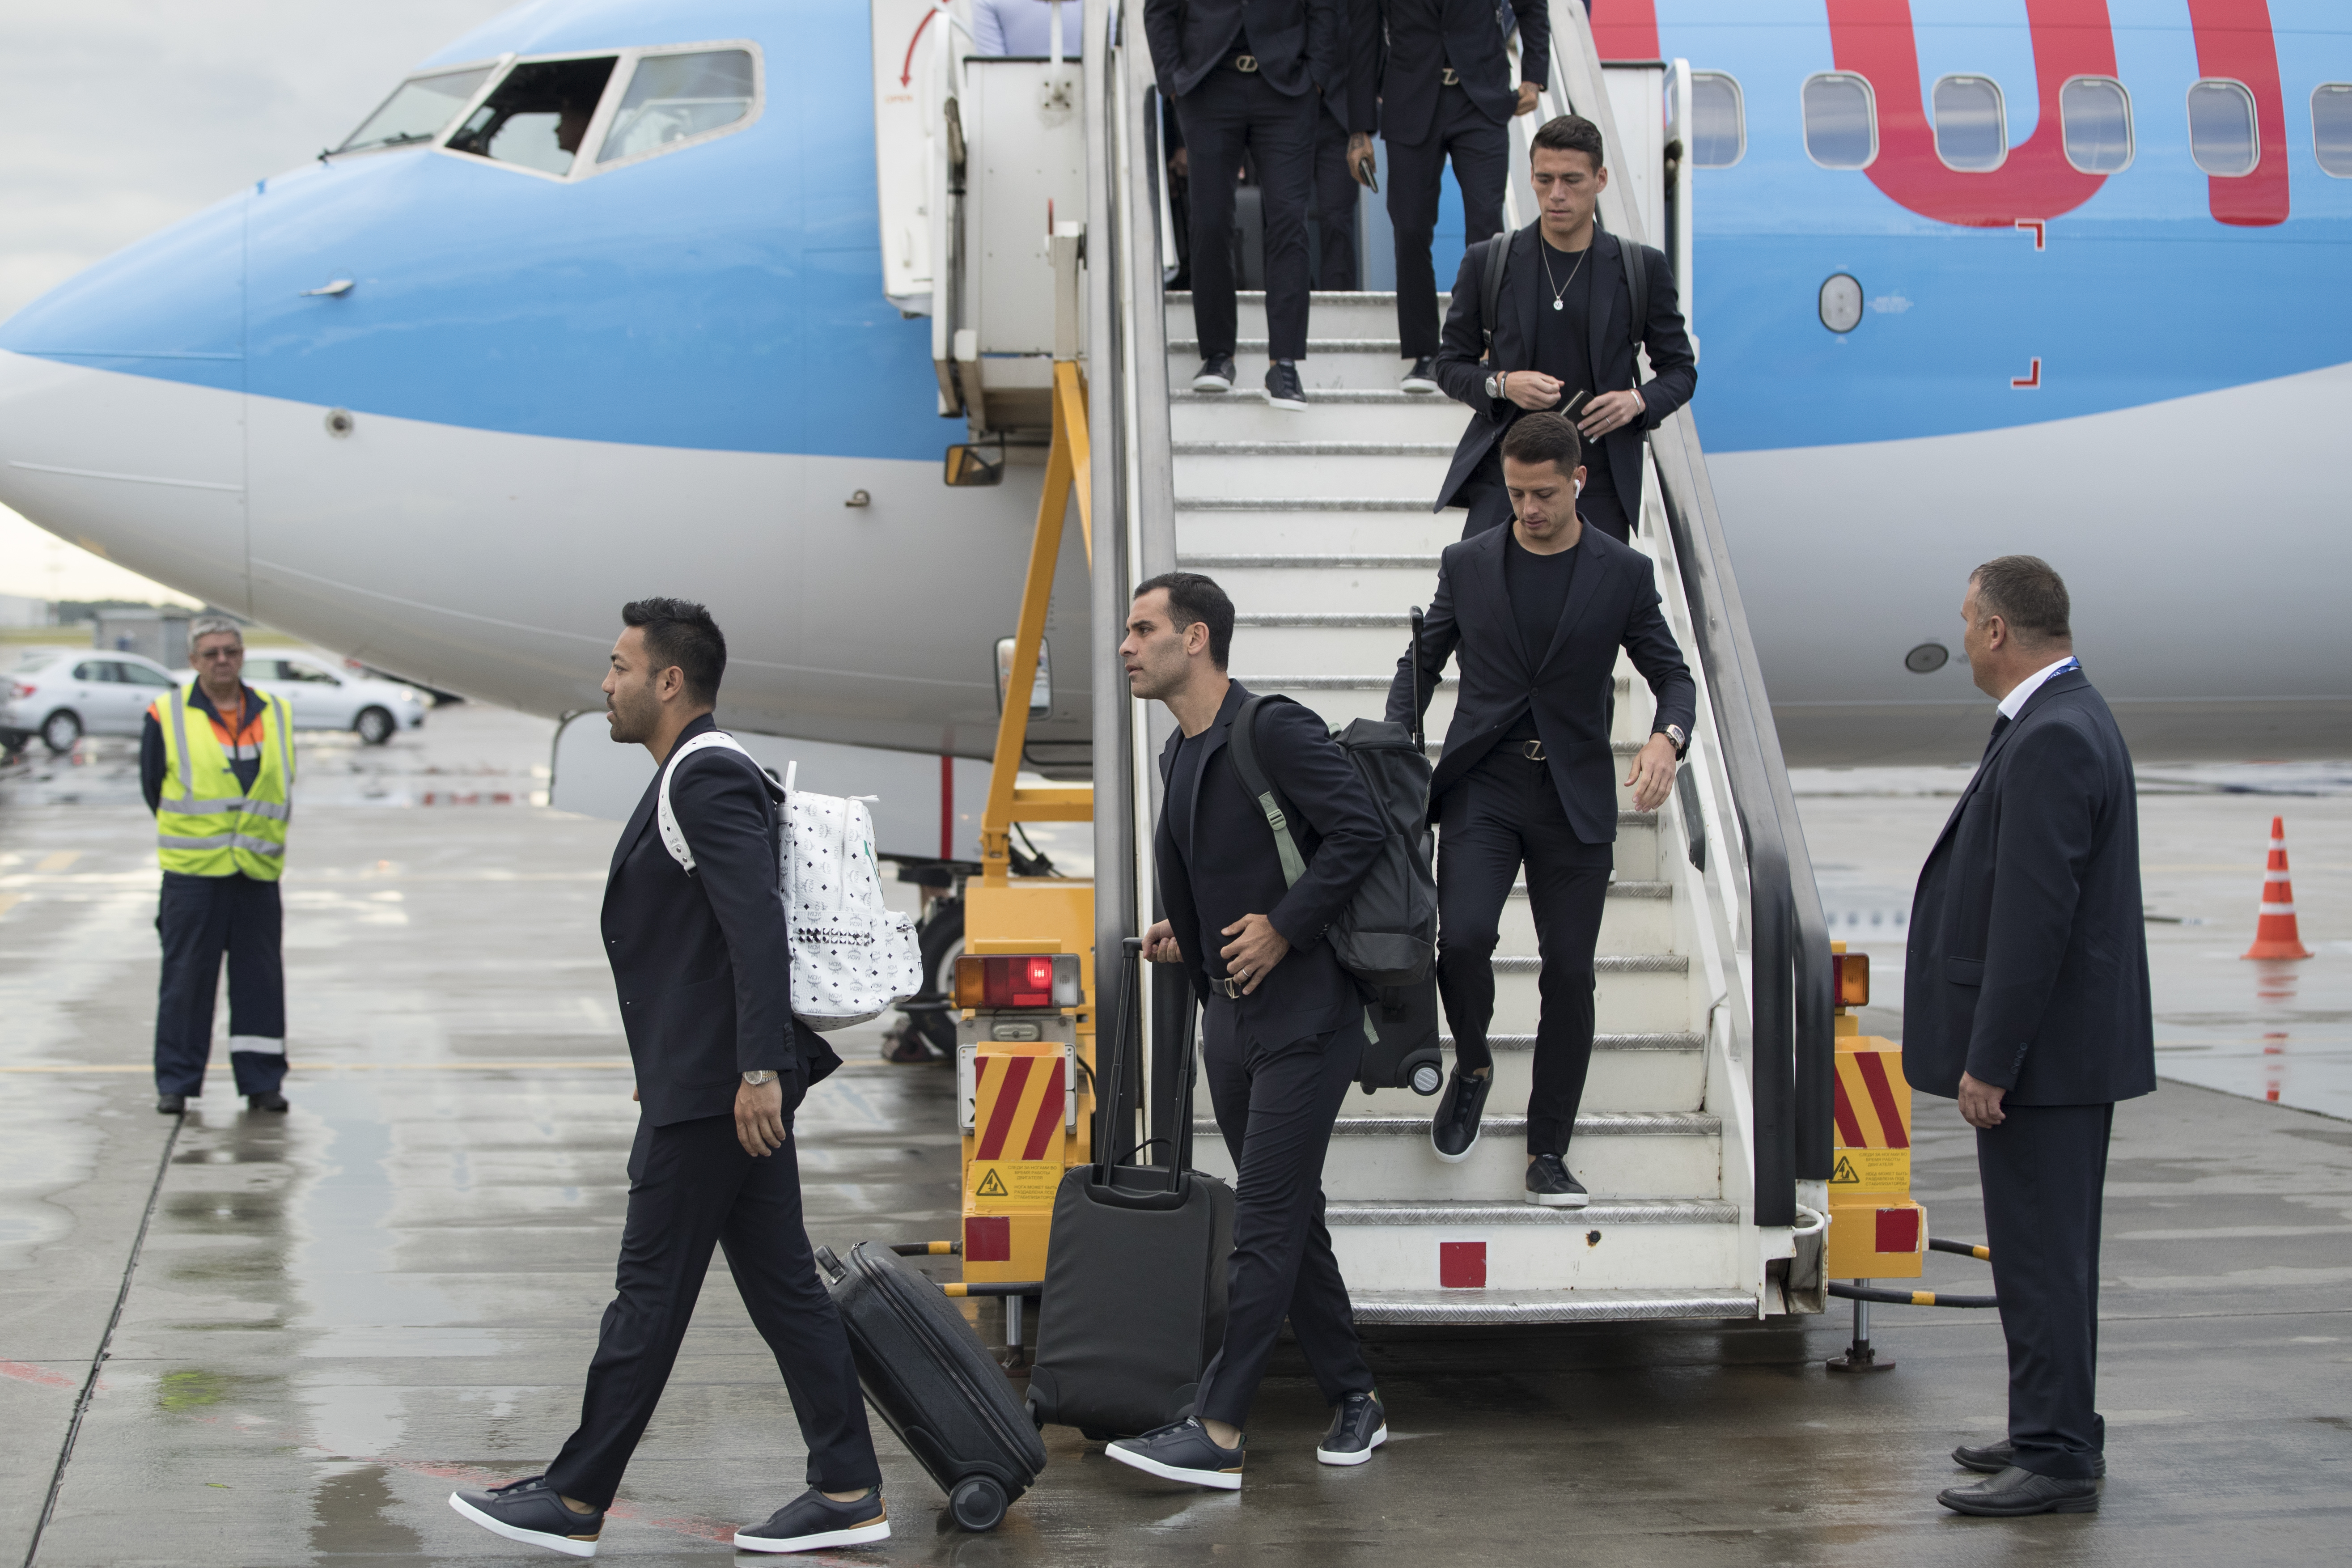 Rafael Marquez, center left, Javier Hernandez, center right, and their teammates disembark the plane as the Mexico national soccer team arrive at the Sheremetyevo international airport, outside Moscow, Russia, Monday, June 11, 2018 to compete in the 2018 World Cup in Russia. The 21st World Cup begins on Thursday, June 14, 2018, when host Russia takes on Saudi Arabia. (AP Photo/Pavel Golovkin)